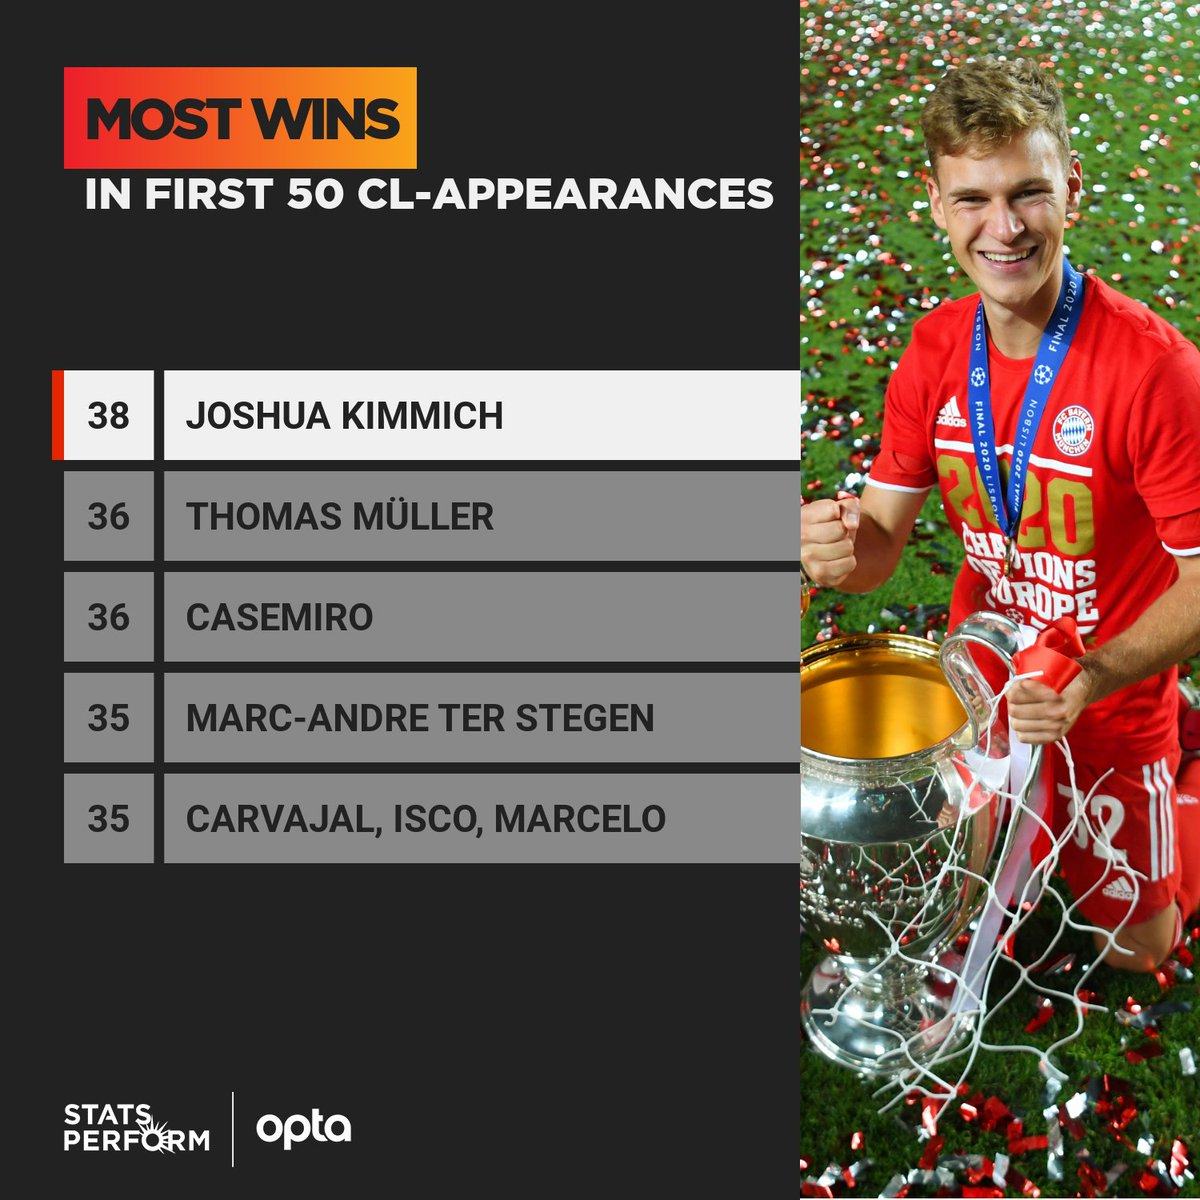 Joshua Kimmich has won 38 of his first 50 Champions League games – the most wins by a player in the first 50 appearances in the competition's history [Opta]